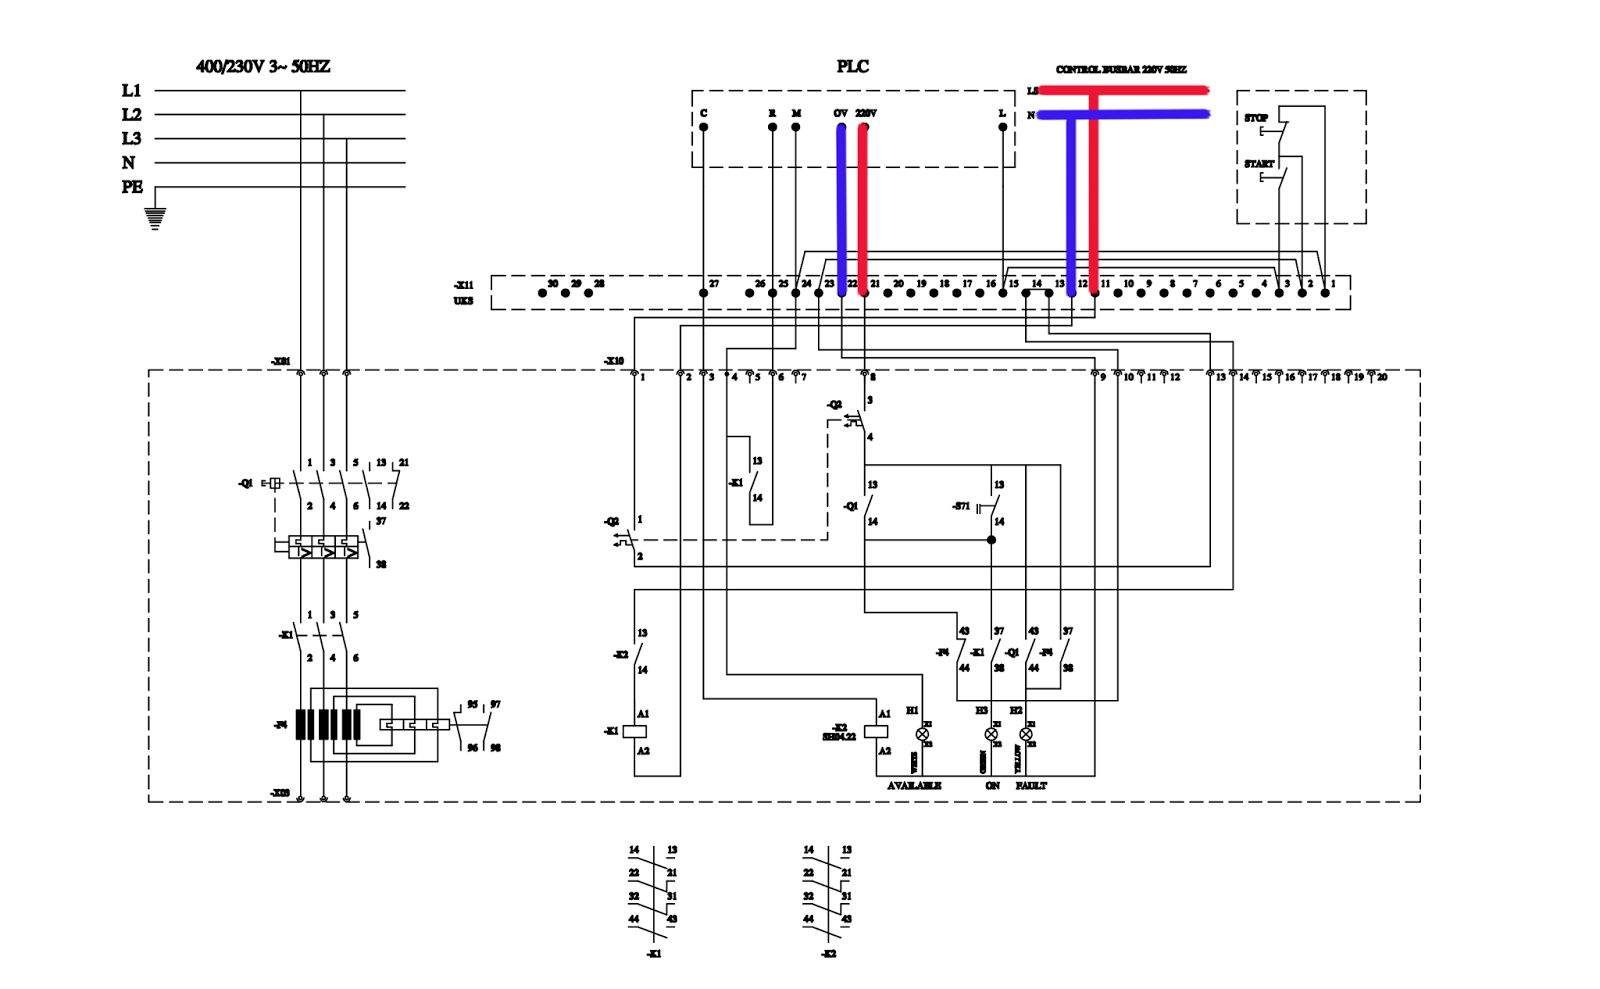 plc panel wiring  plc  get free image about wiring diagram